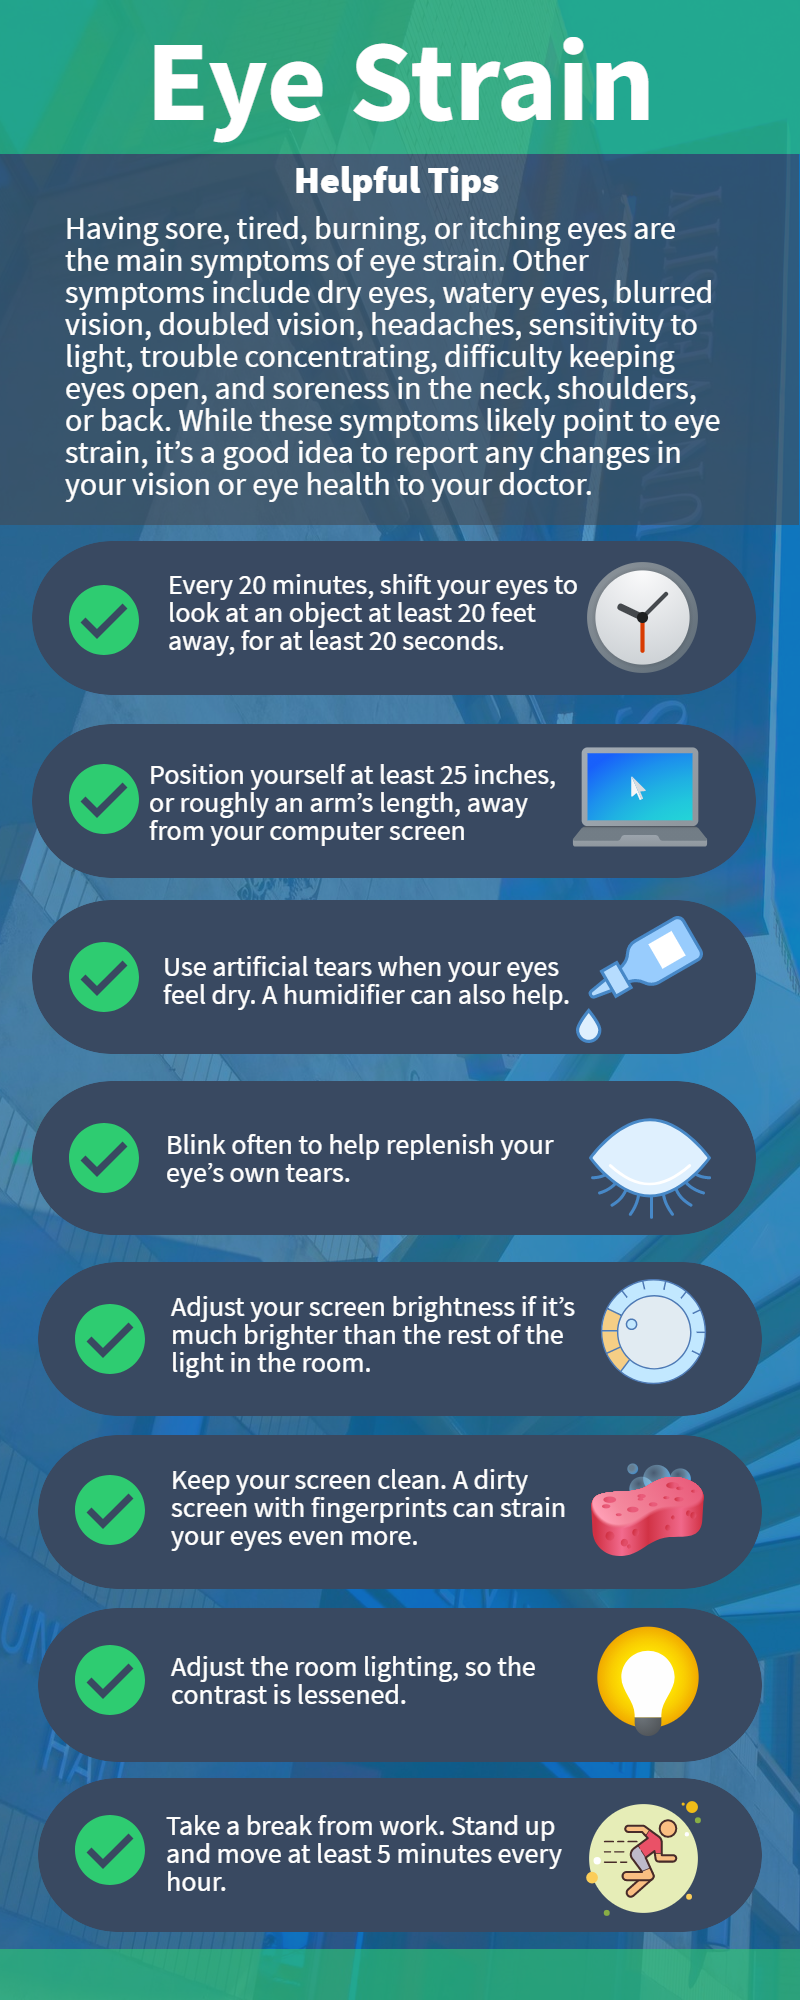 Printable eye strain infographic containing the aforementioned eye strain tips.